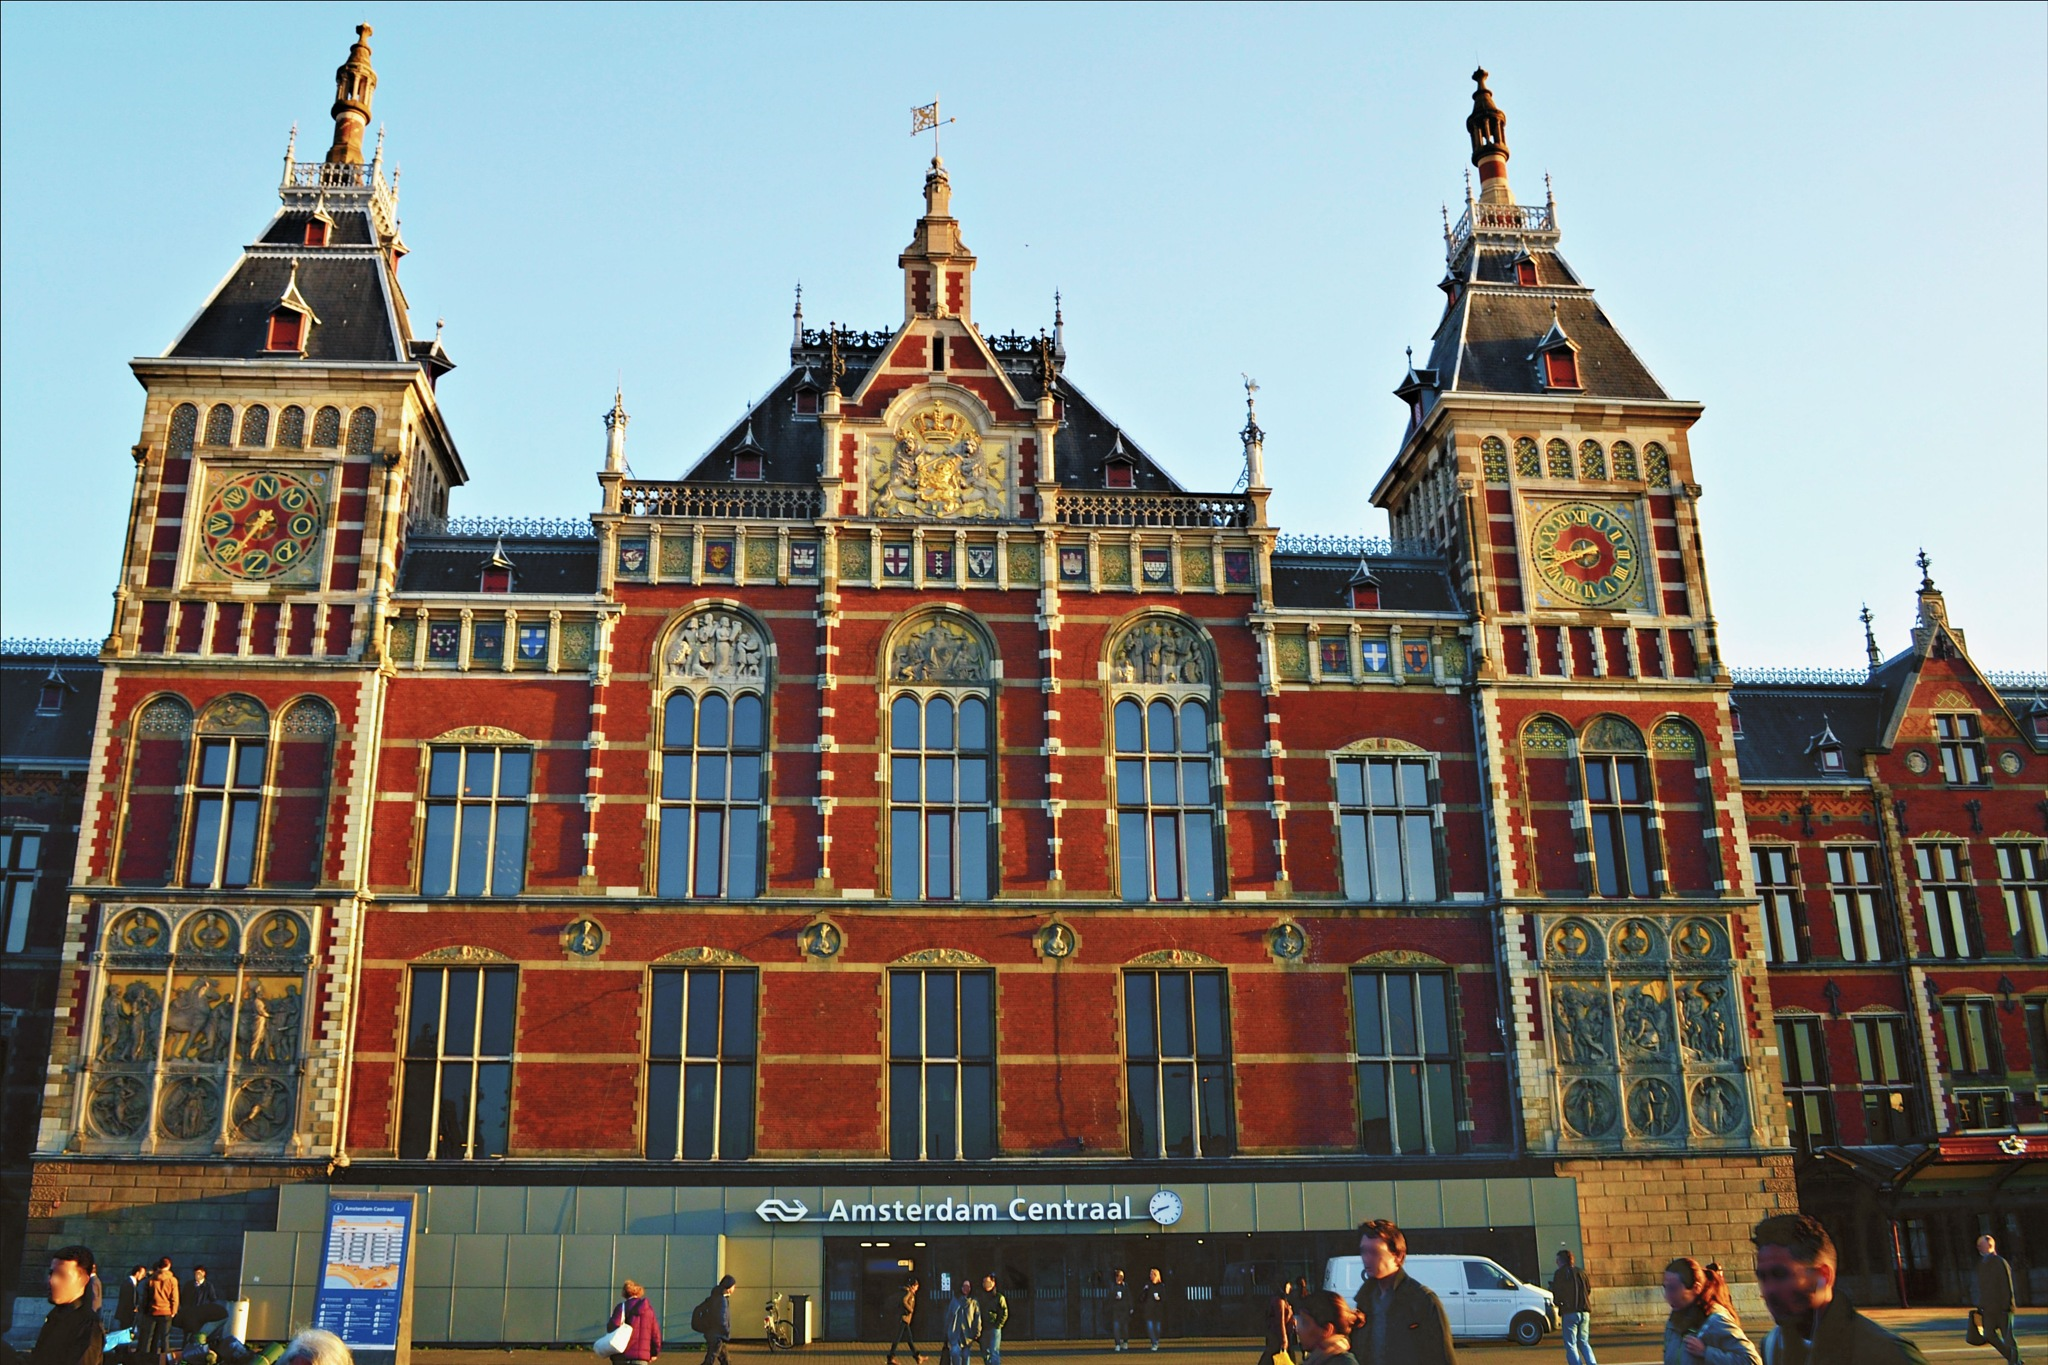 Amsterdam Centraal by Fred Matos